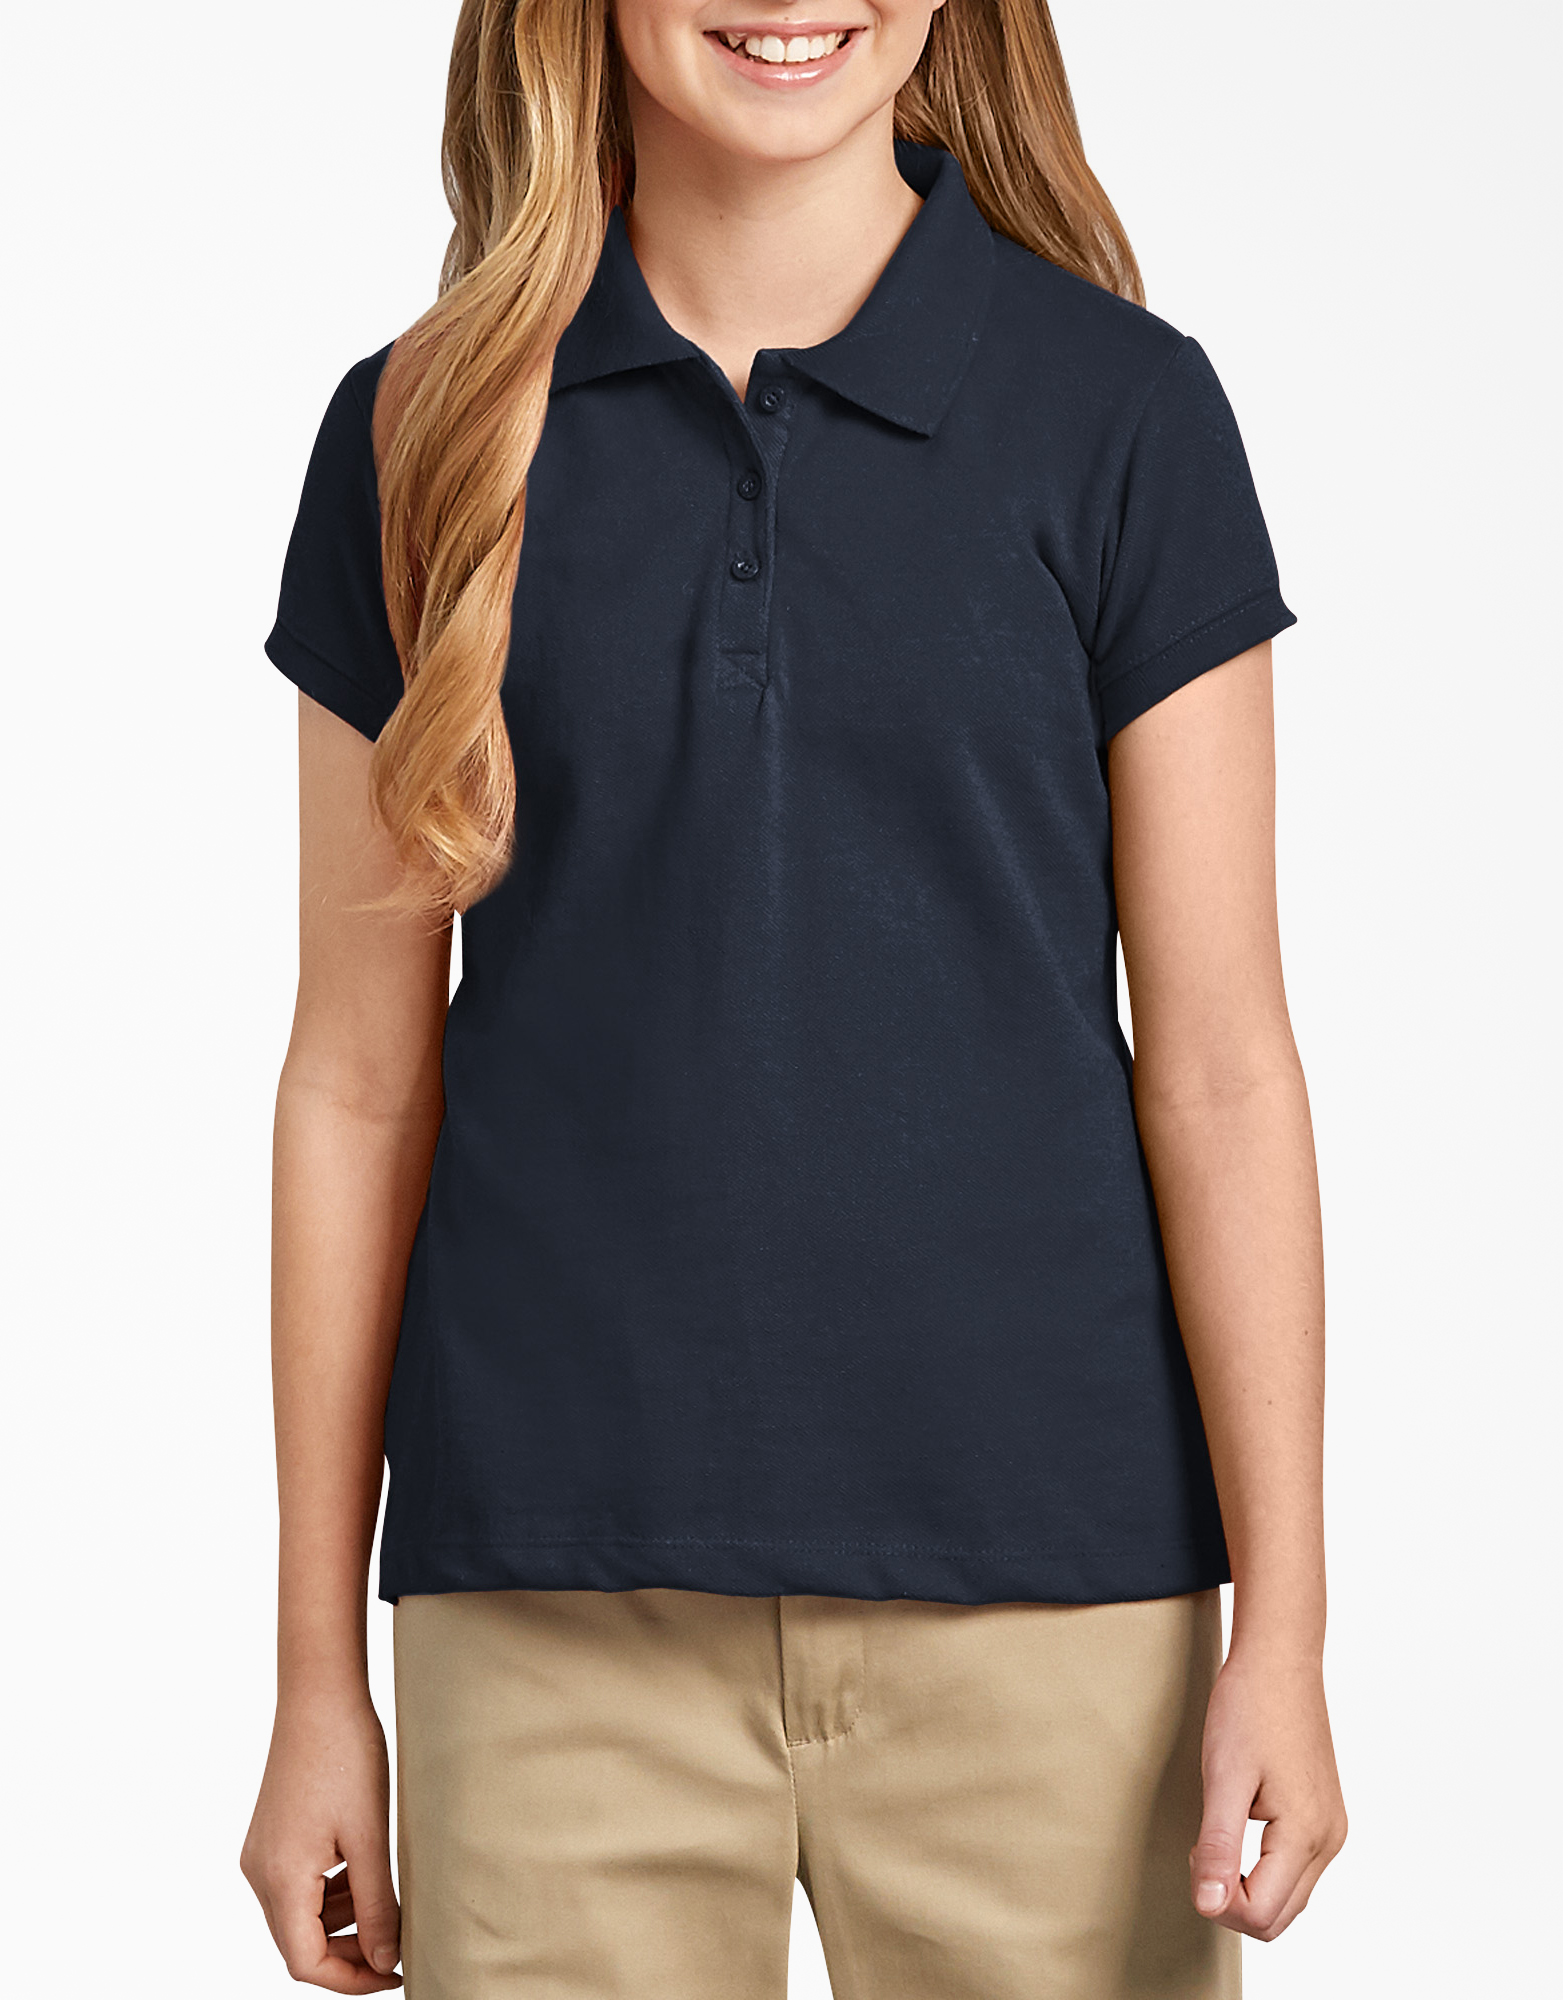 Girls' Short Sleeve Pique Polo Shirt,  7-20 - Dark Navy (DN)